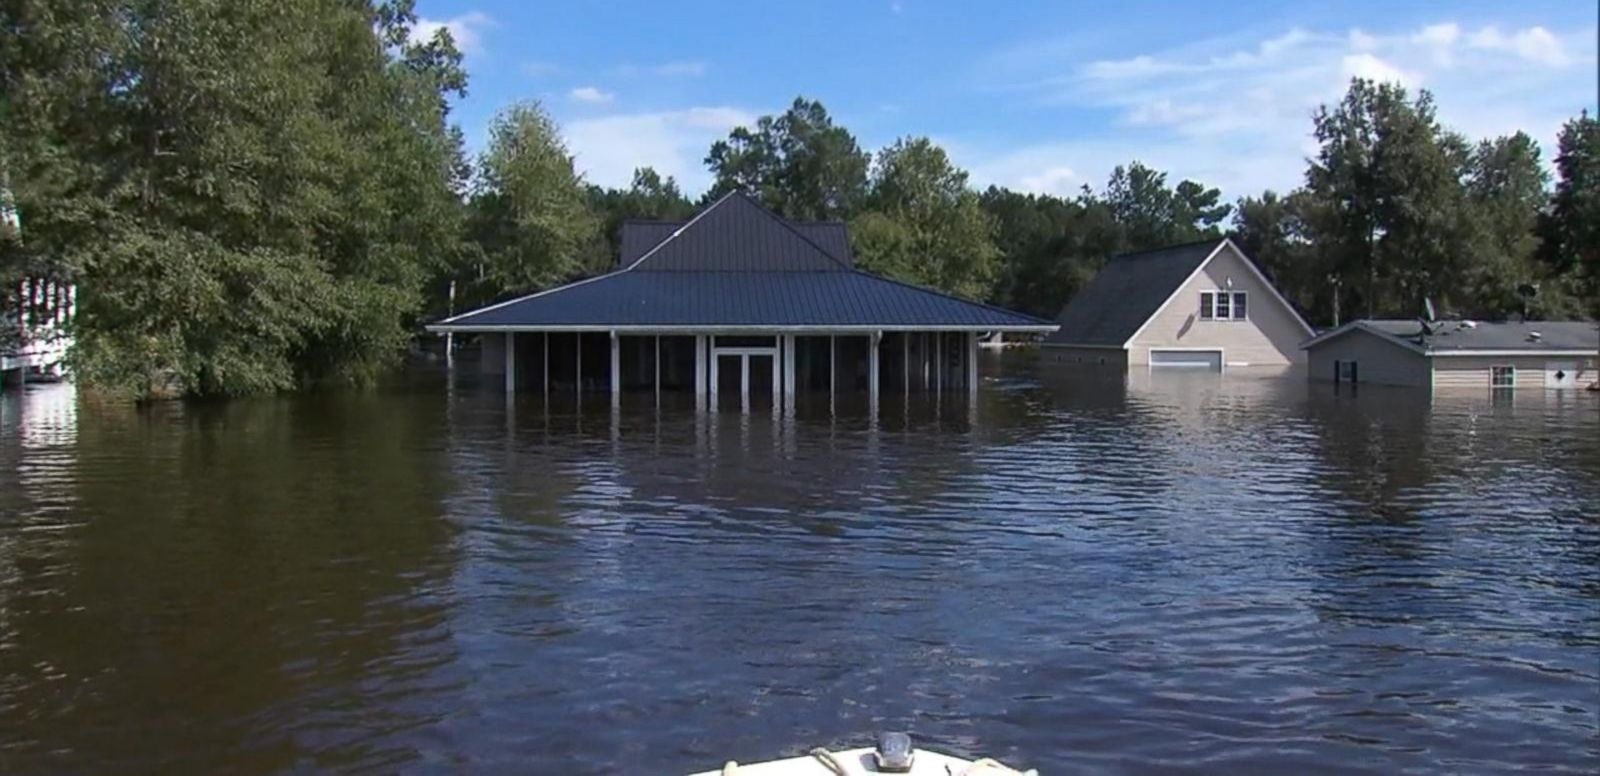 VIDEO: New Round of Devastation on South Carolina's Coast With More Rain in the Forecast